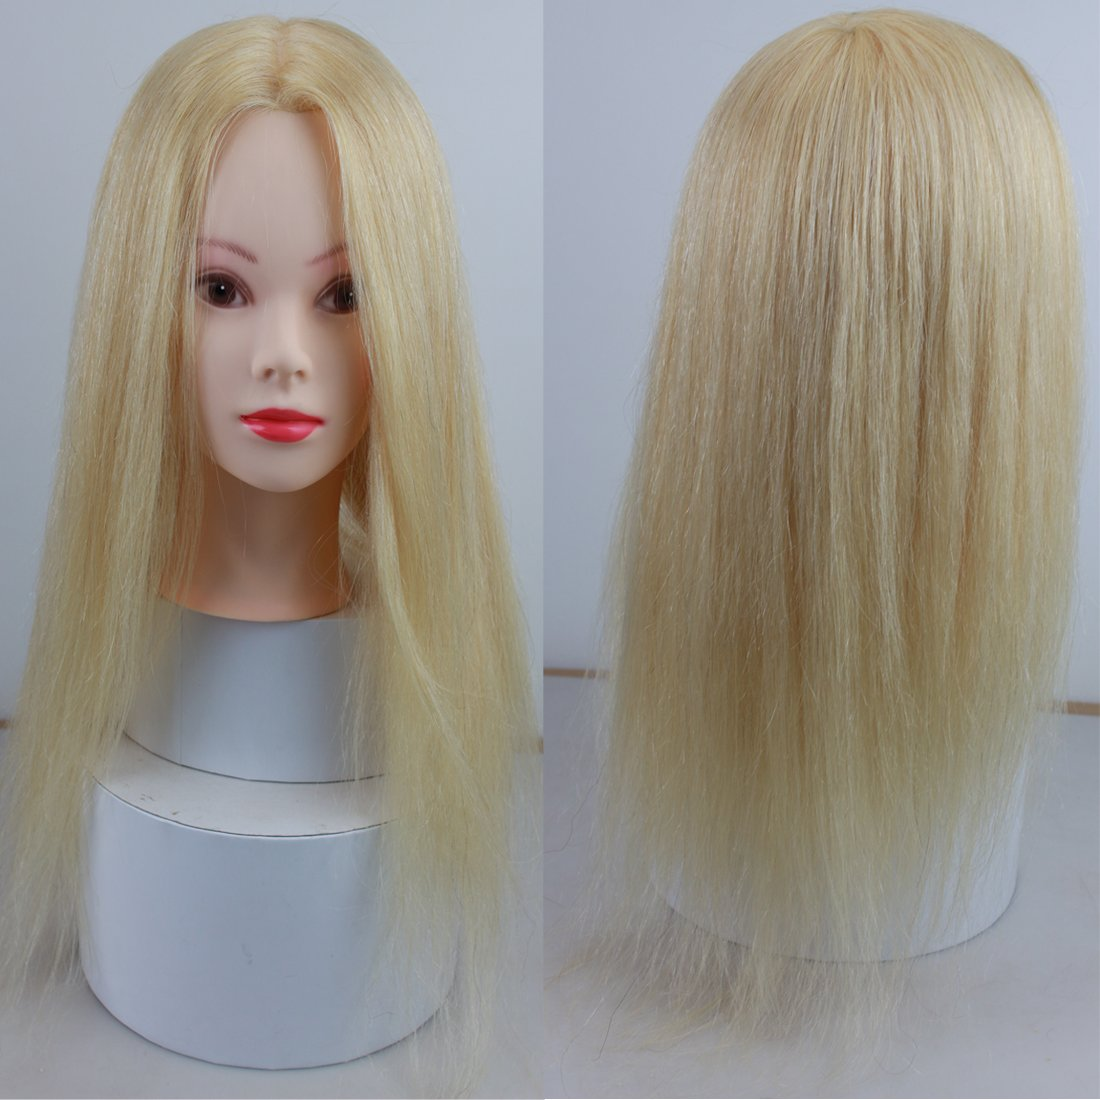 Dreambeauty Hairdressing Training Heads 100% Real Human Hair Mannequin Styling Dolls Head 613# Blonde Color Qingdao Feiyang Hair Co. Ltd